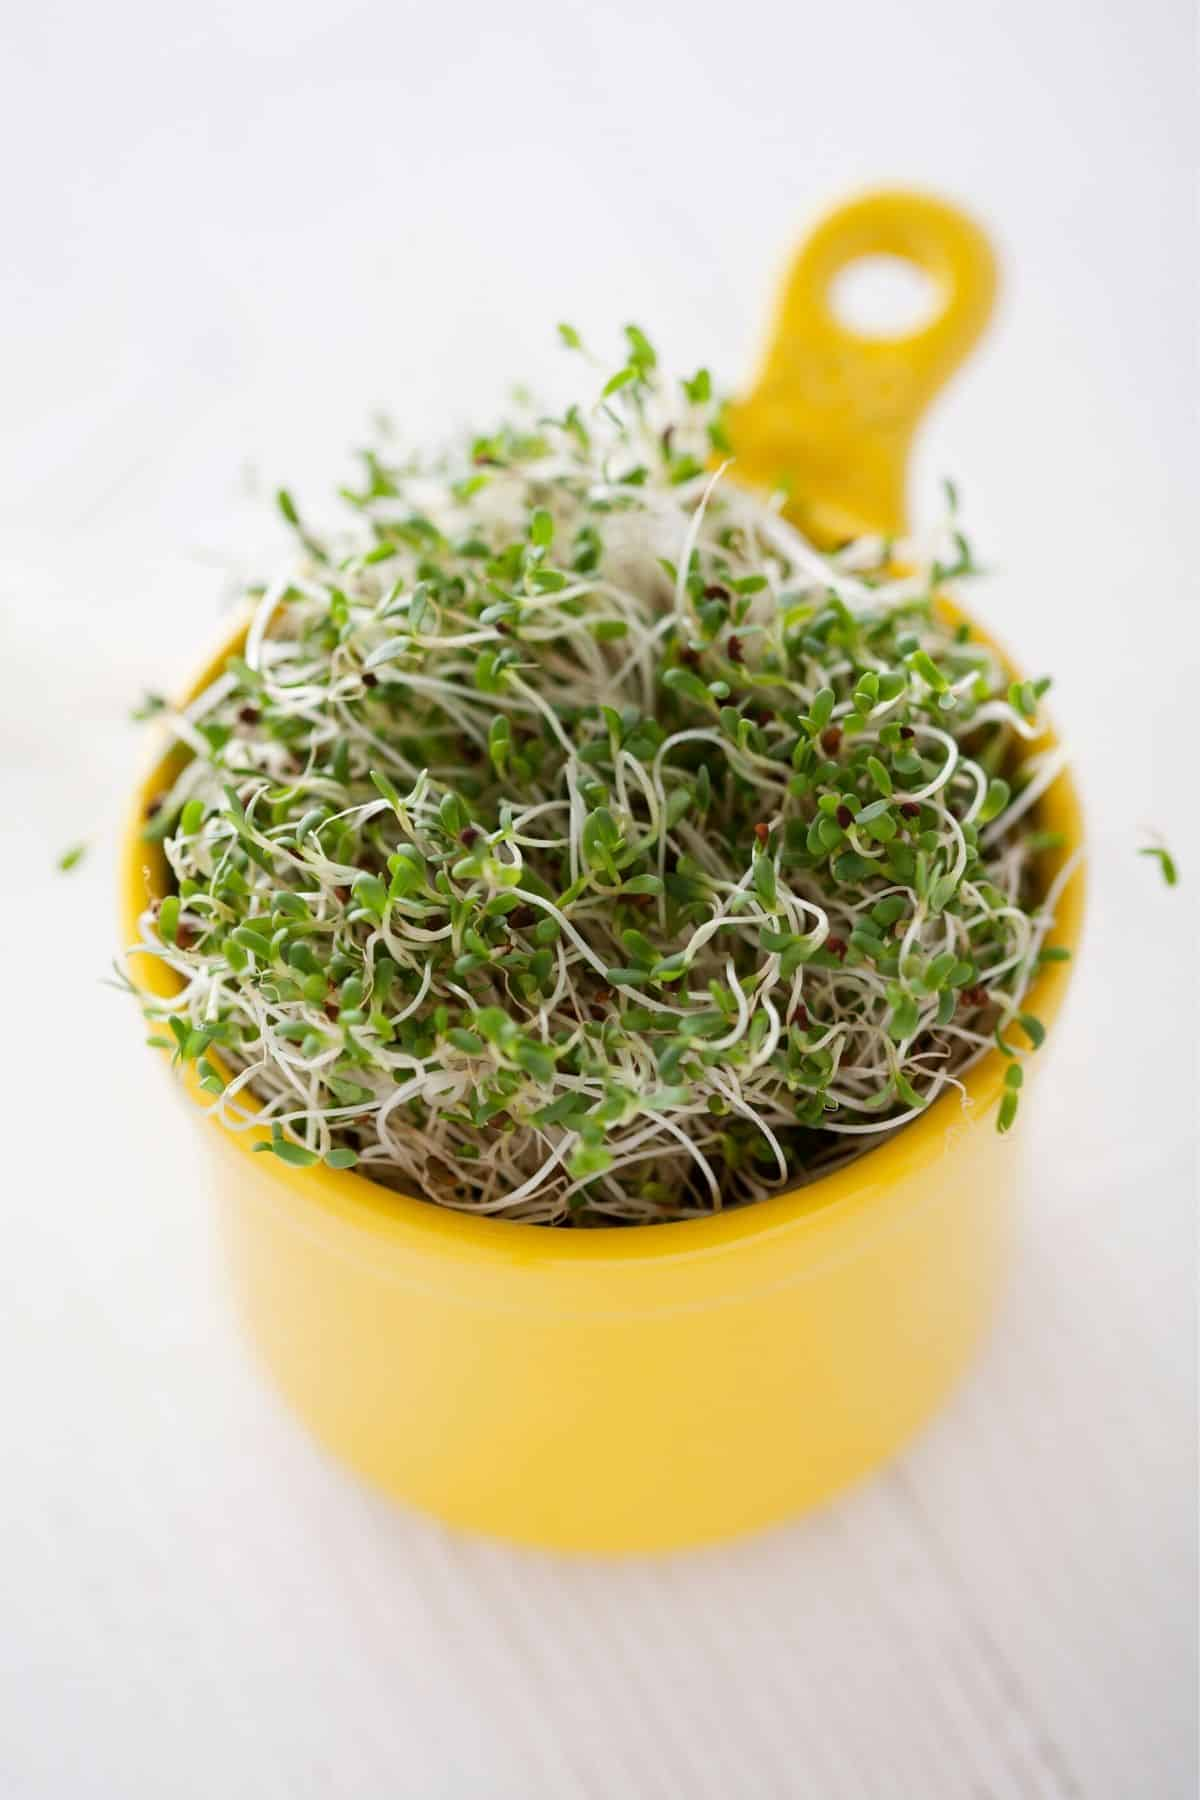 cup of broccoli sprouts